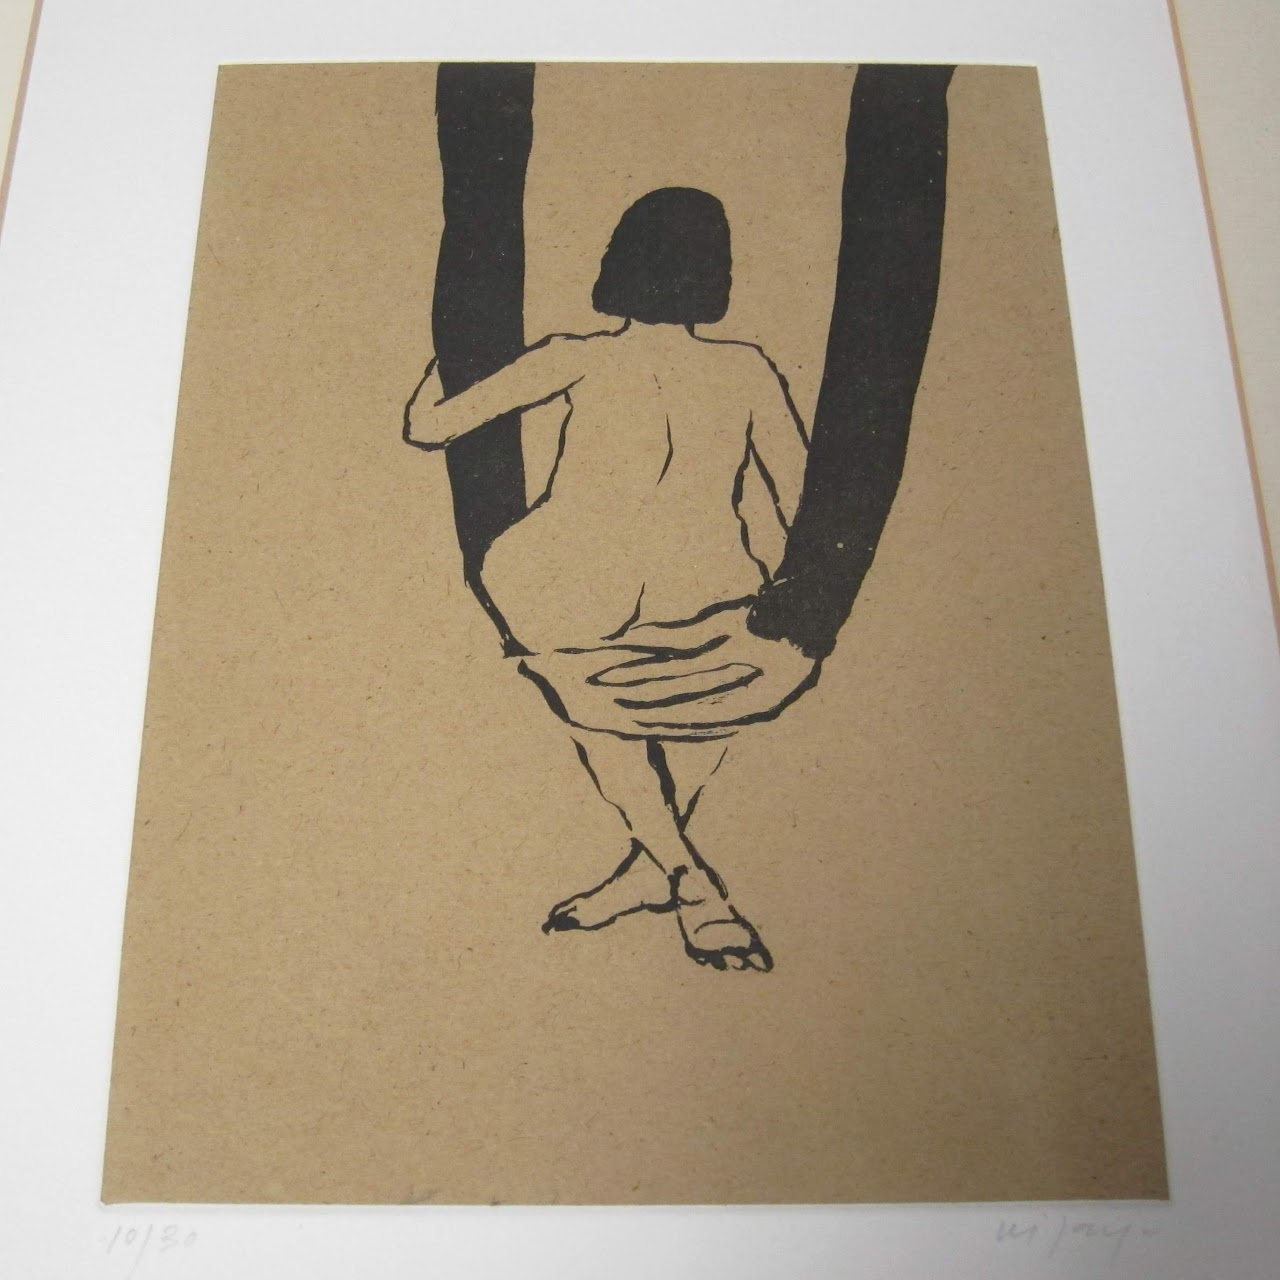 Signed Lithograph on Handmade Paper